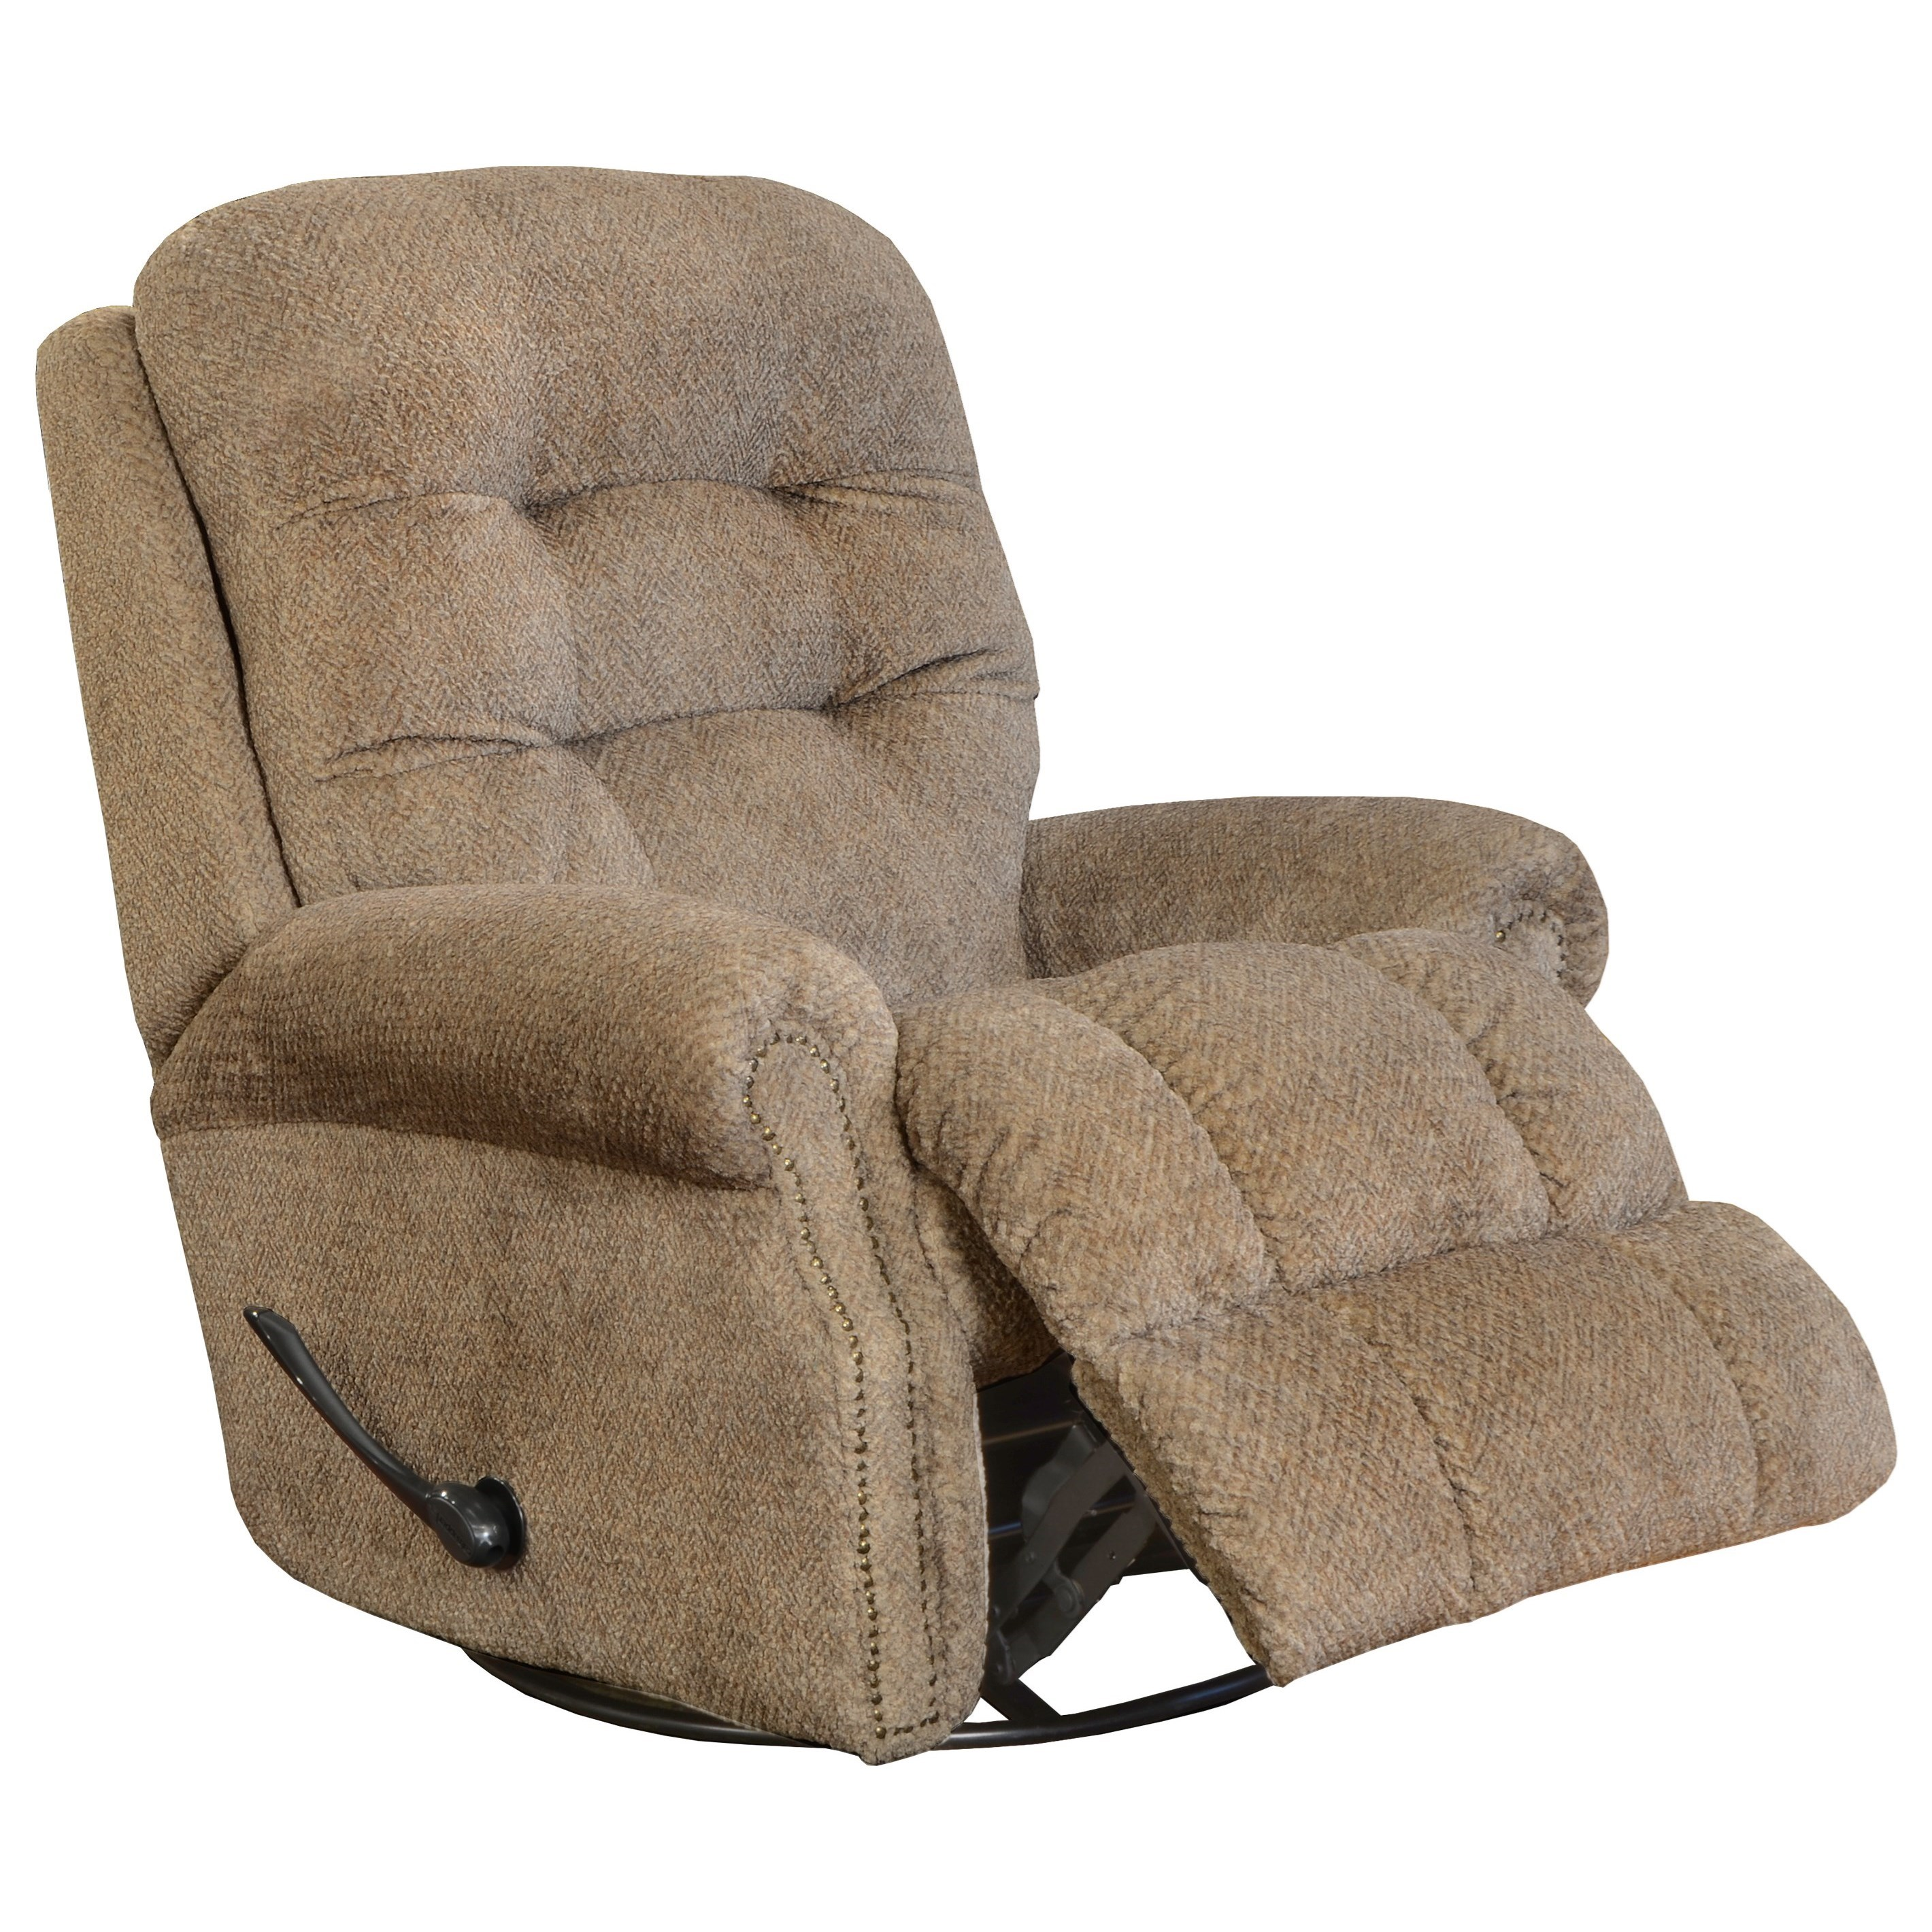 Norwood Swivel Glider Recliner by Catnapper at Johnny Janosik